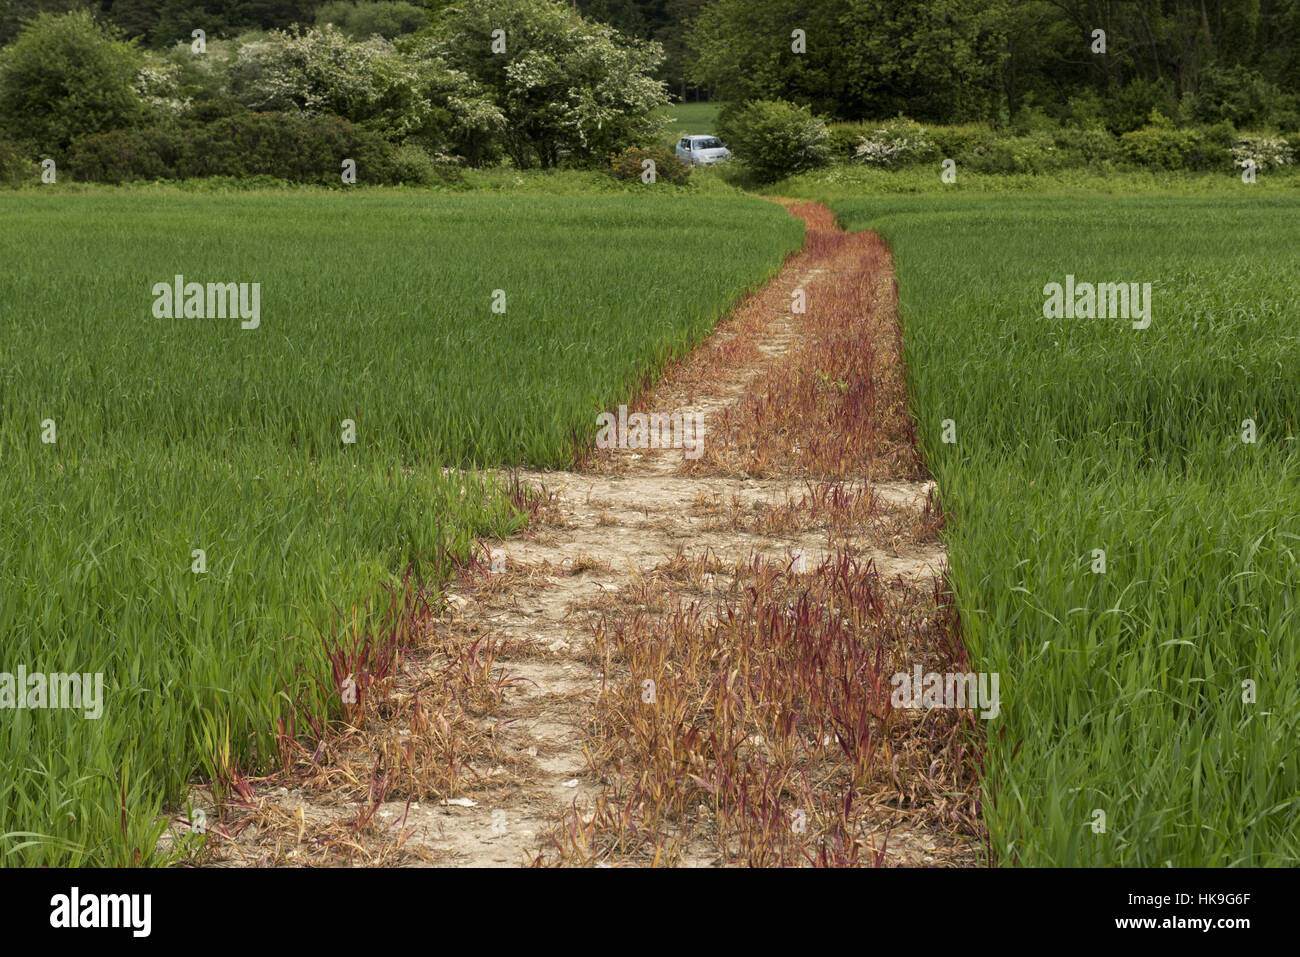 A footpath sprayed off with glyphosate and cut through a crop of young oats, June, Berkshire - Stock Image